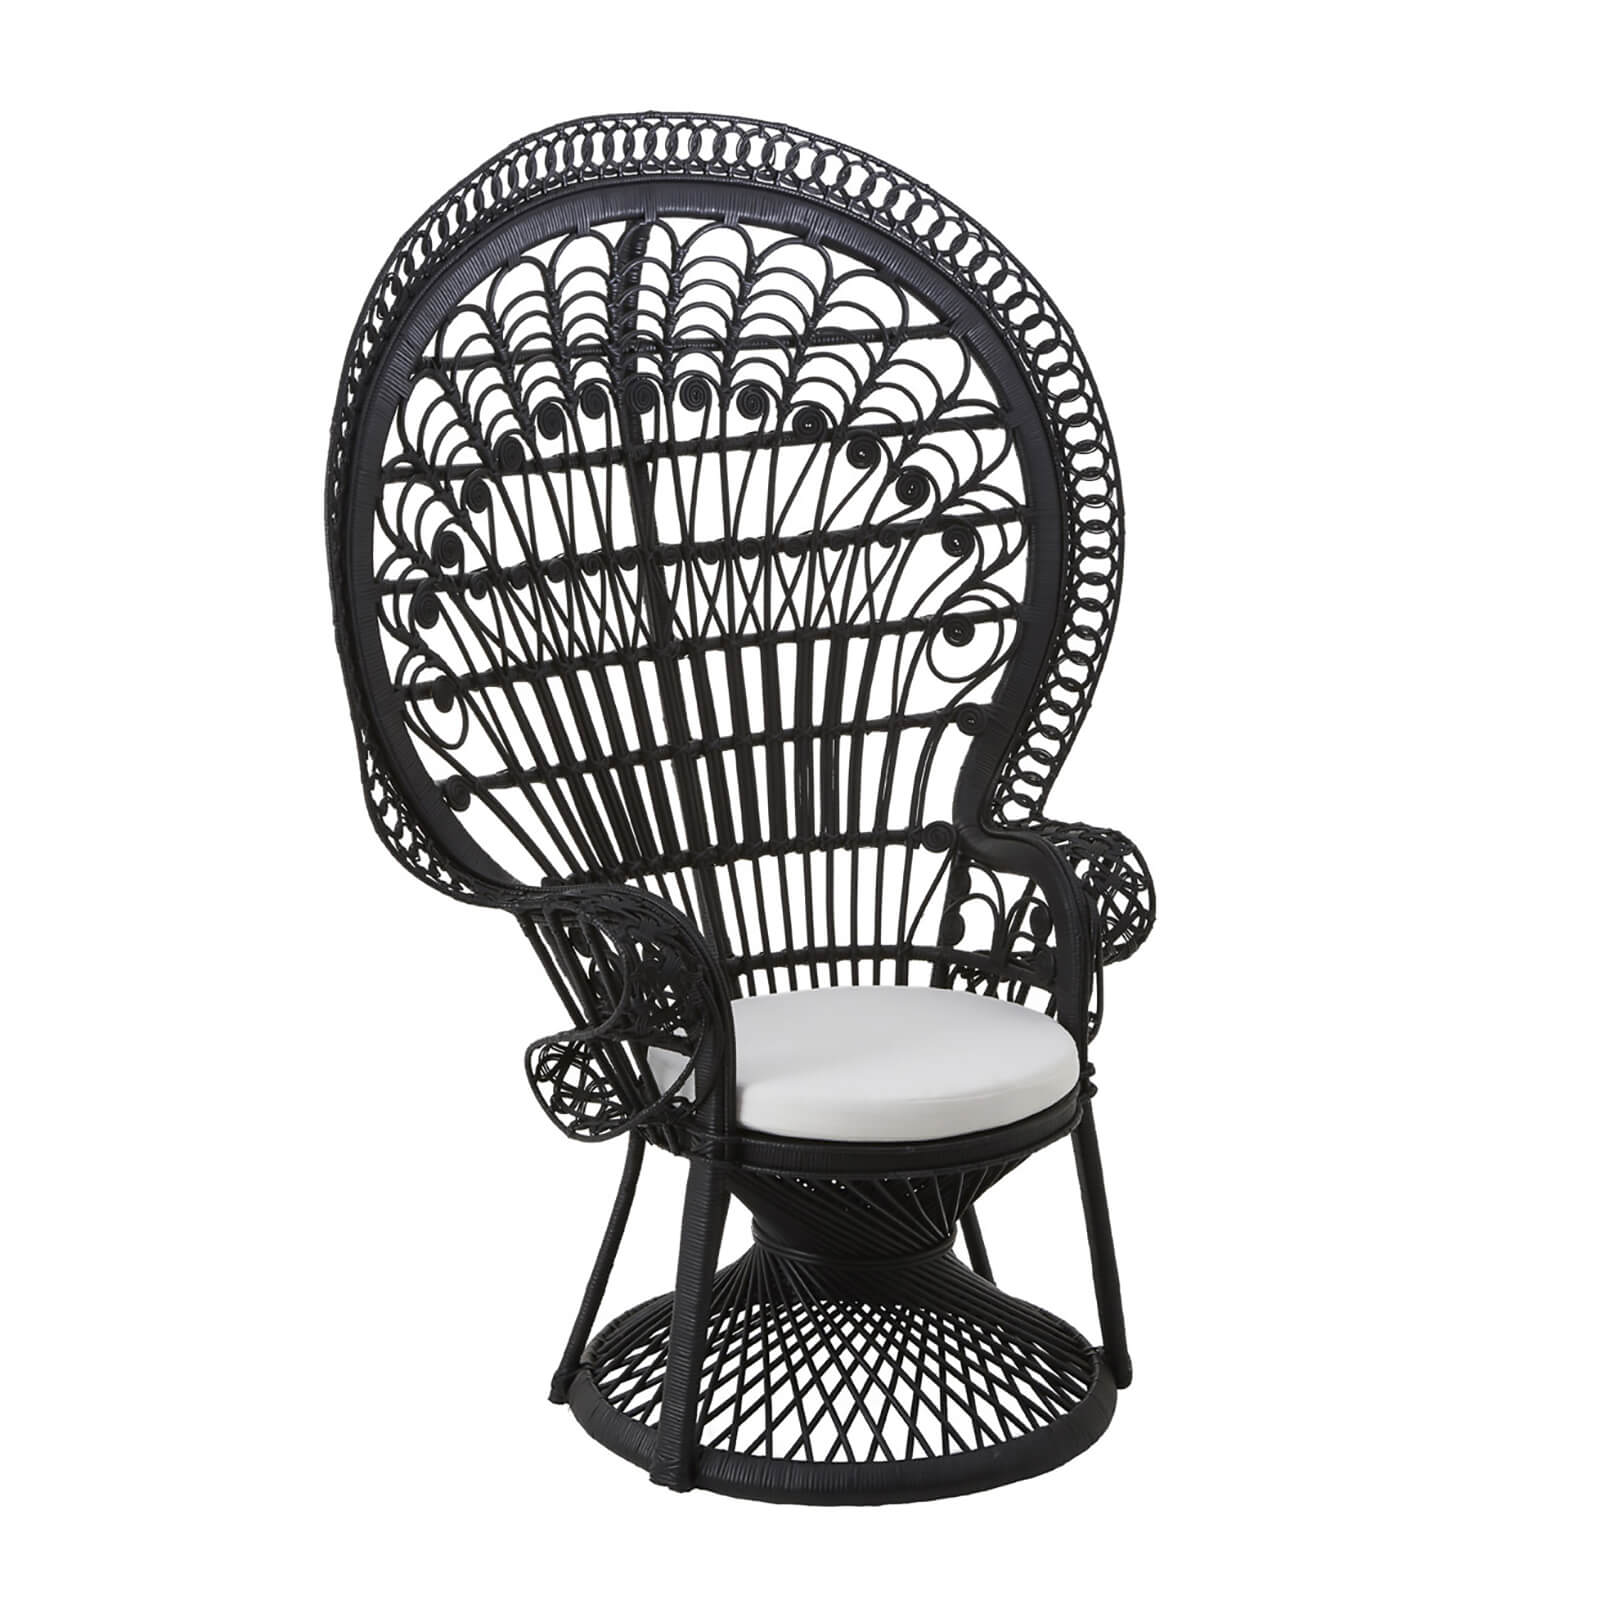 Fifty Five South Woodstock Peacock Rattan Chair - Black